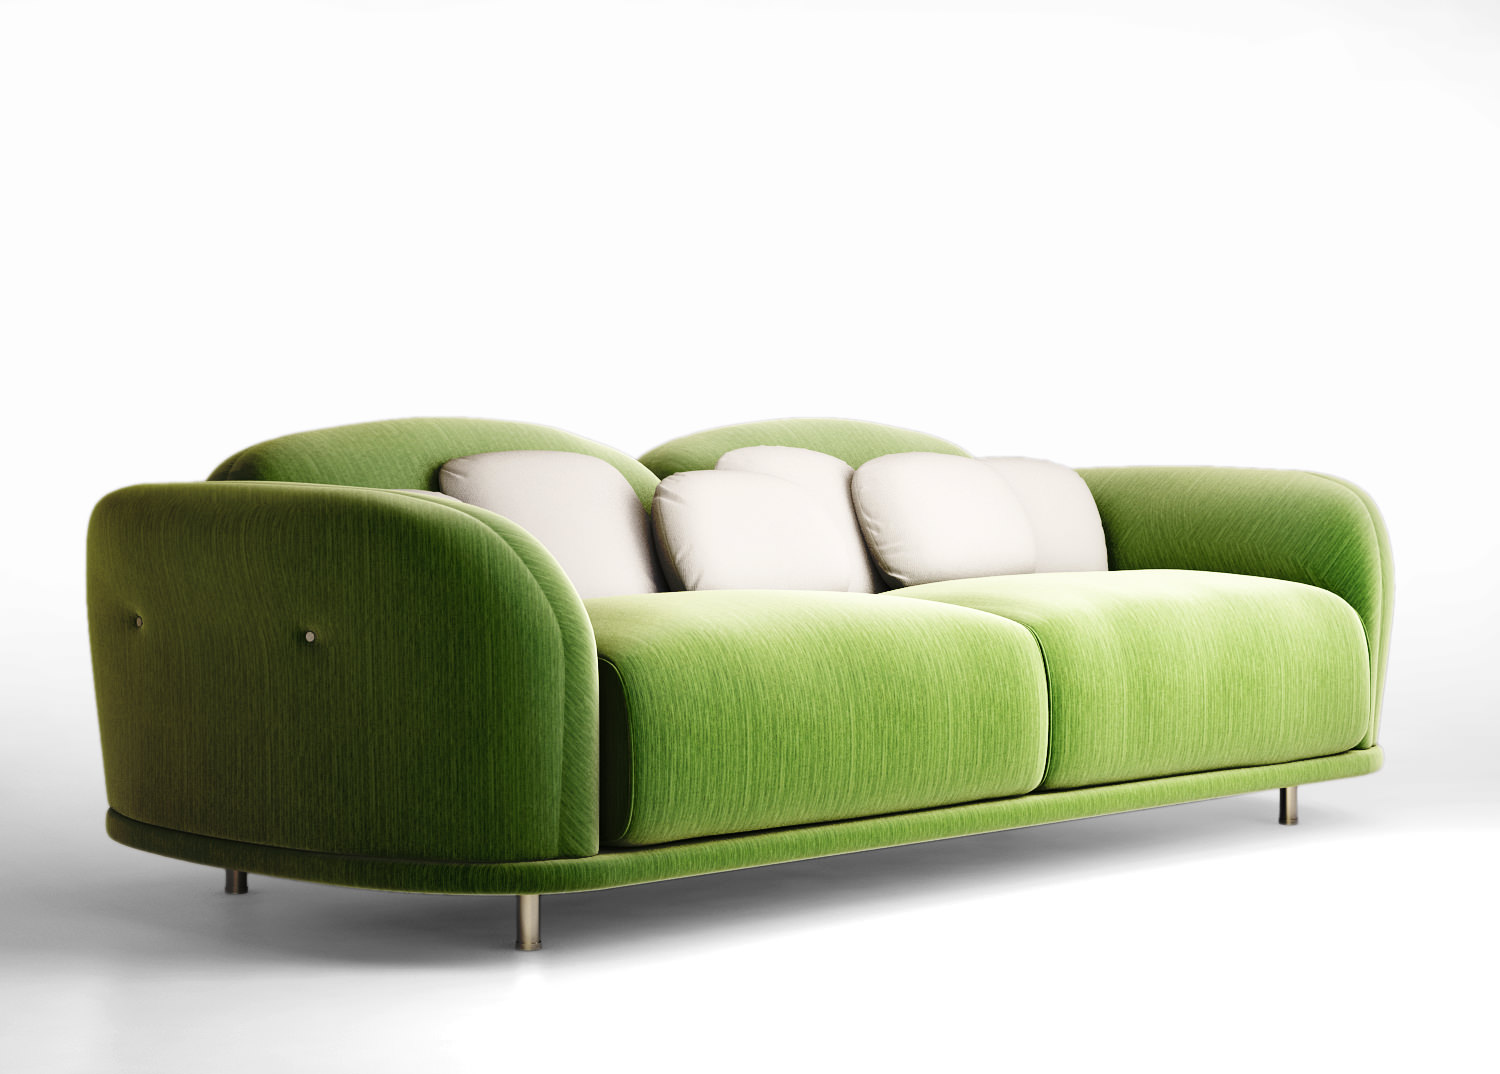 Sofa Palette Darya Girina Interior Design Green Color In Color Palette Of